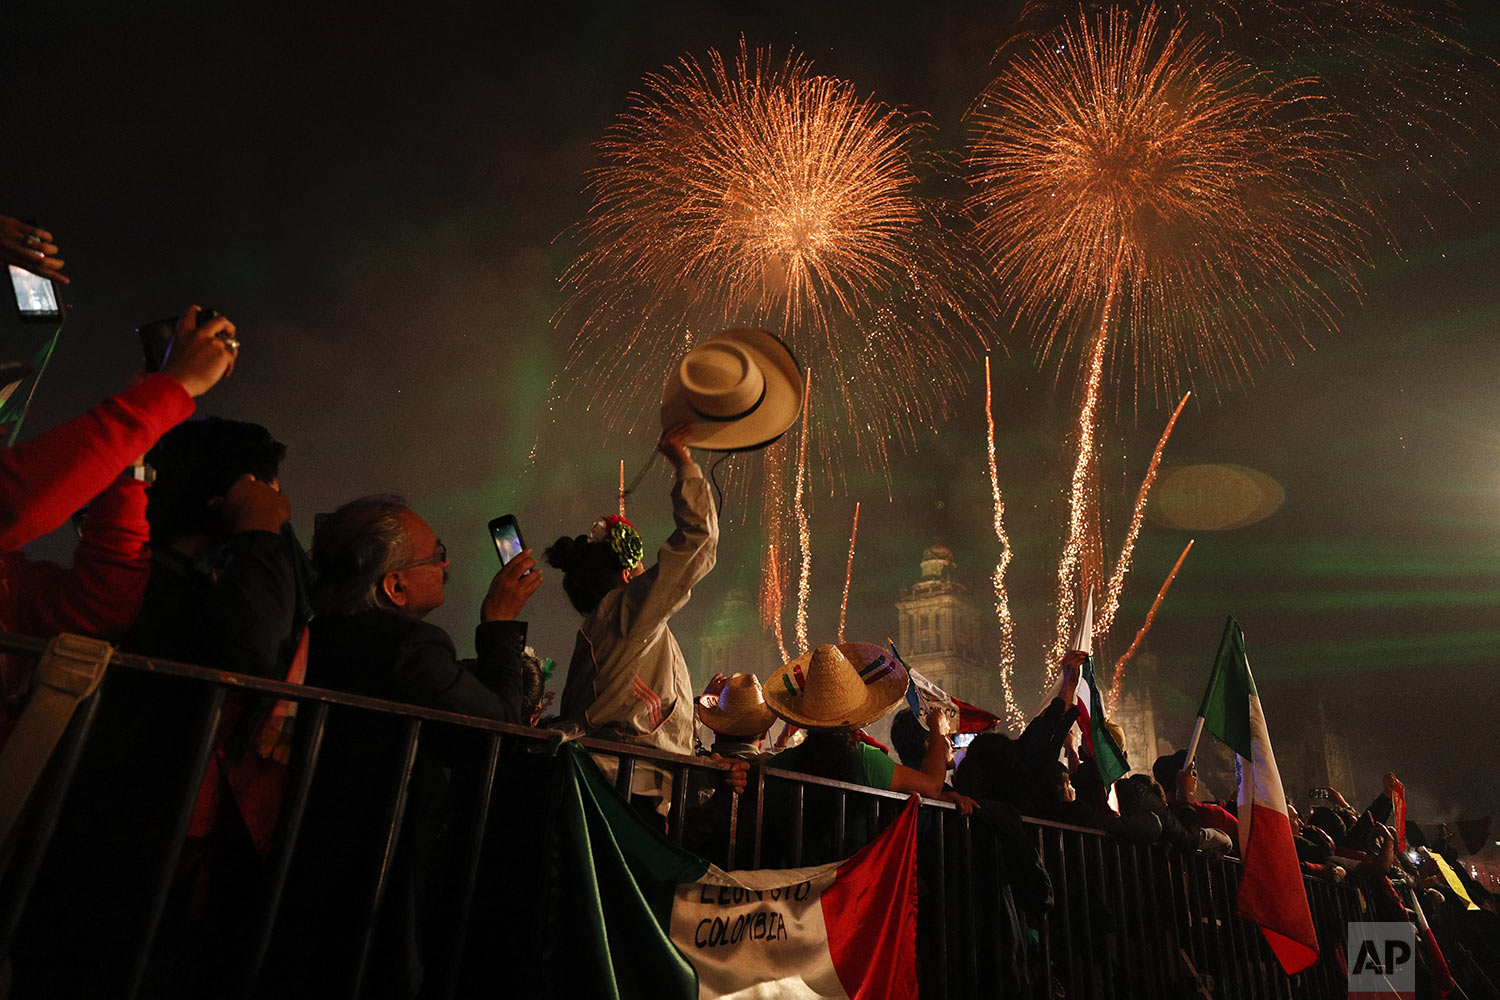 """Revelers celebrate as fireworks explode over the Metropolitan Cathedral after President Andres Manuel Lopez Obrador gave the annual independence shout from the balcony of the National Palace to kick off Independence Day celebrations in Mexico City, late Sunday, Sept. 15, 2019. Every year the Mexican president marks the """"Grito de Dolores,"""" commemorating the 1810 call to arms by priest Miguel Hidalgo that began the struggle for independence from Spain, achieved in 1821. (AP Photo/Rebecca Blackwell)"""